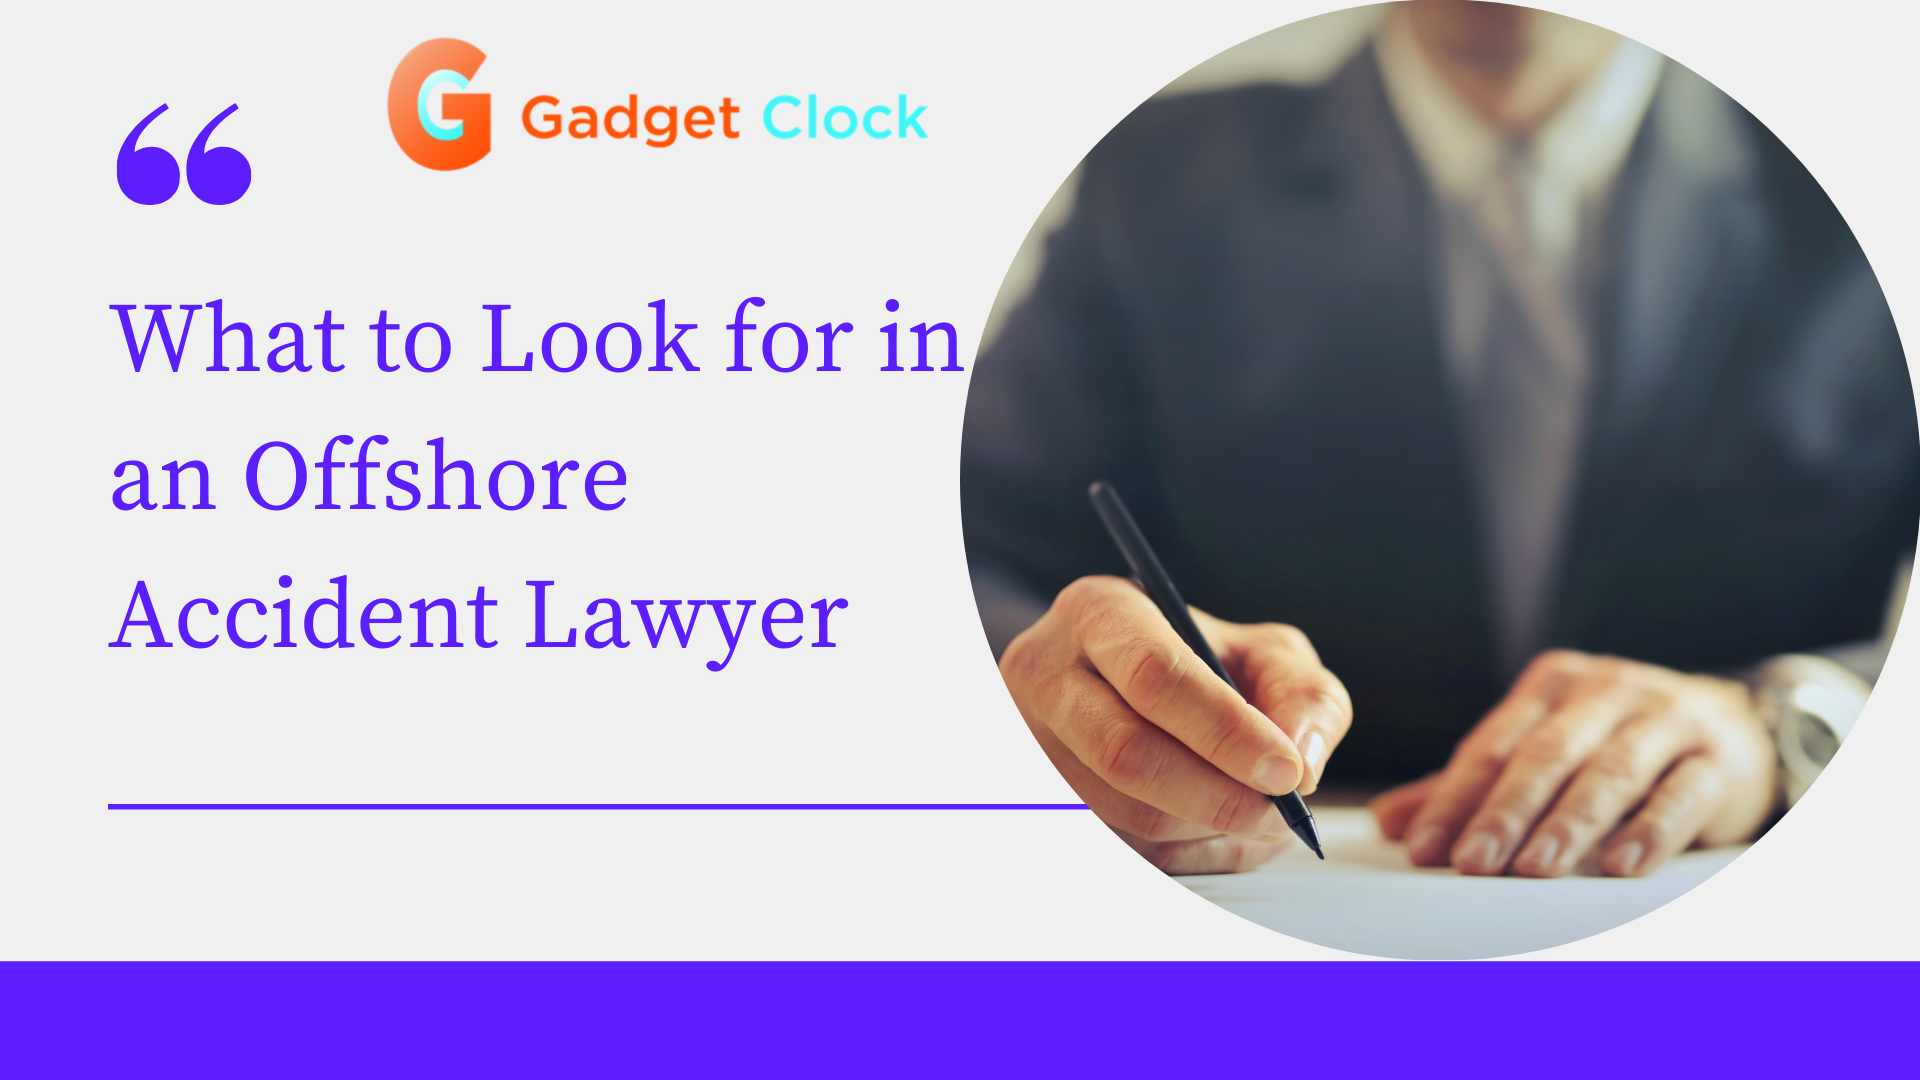 Offshore Accident Lawyer in 2021: What to Look for in an Best Offshore Accident Lawyer